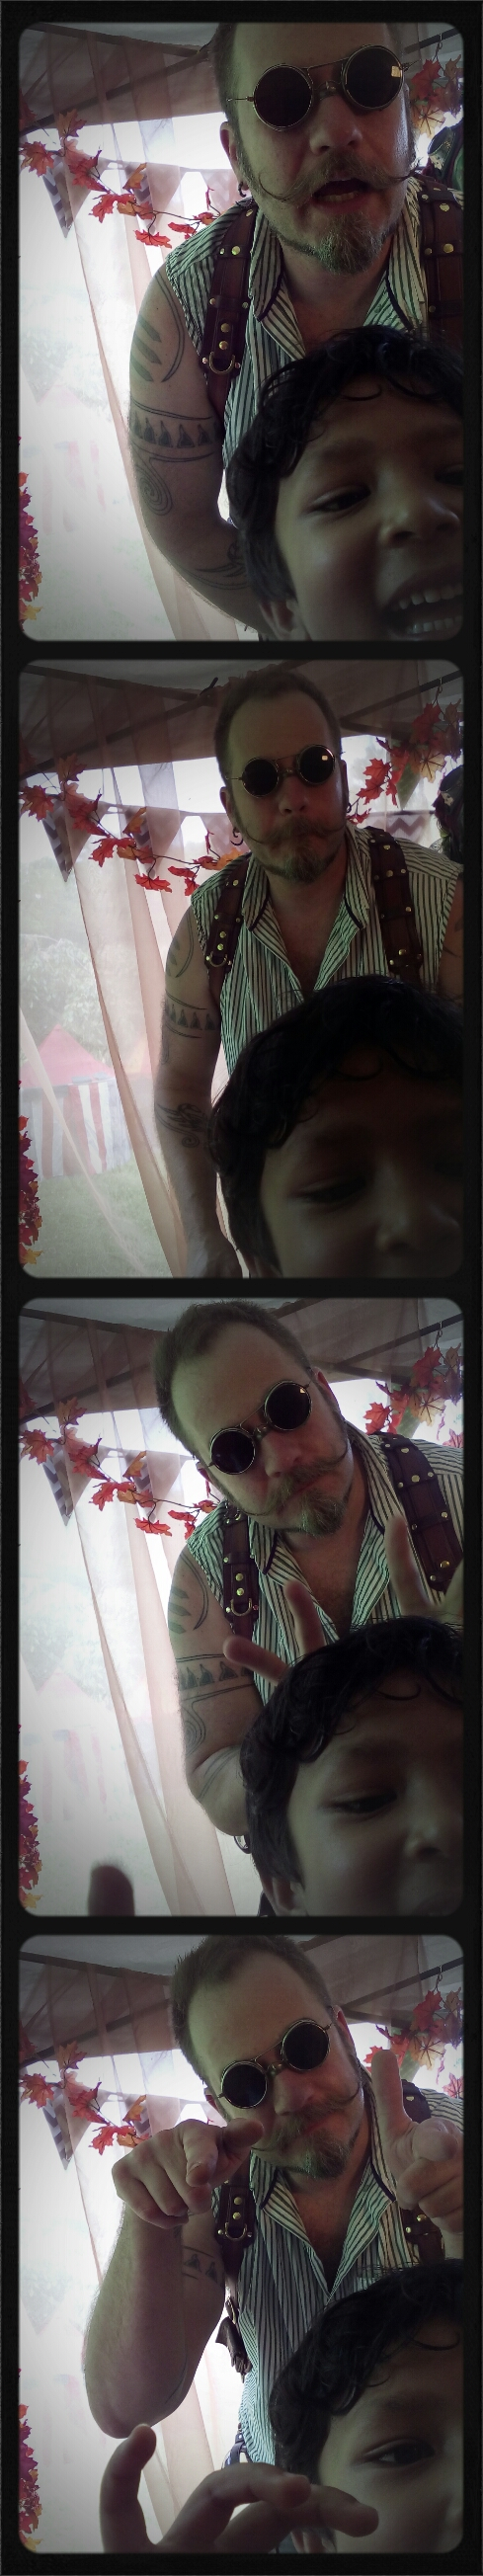 Pocketbooth_20150613155423